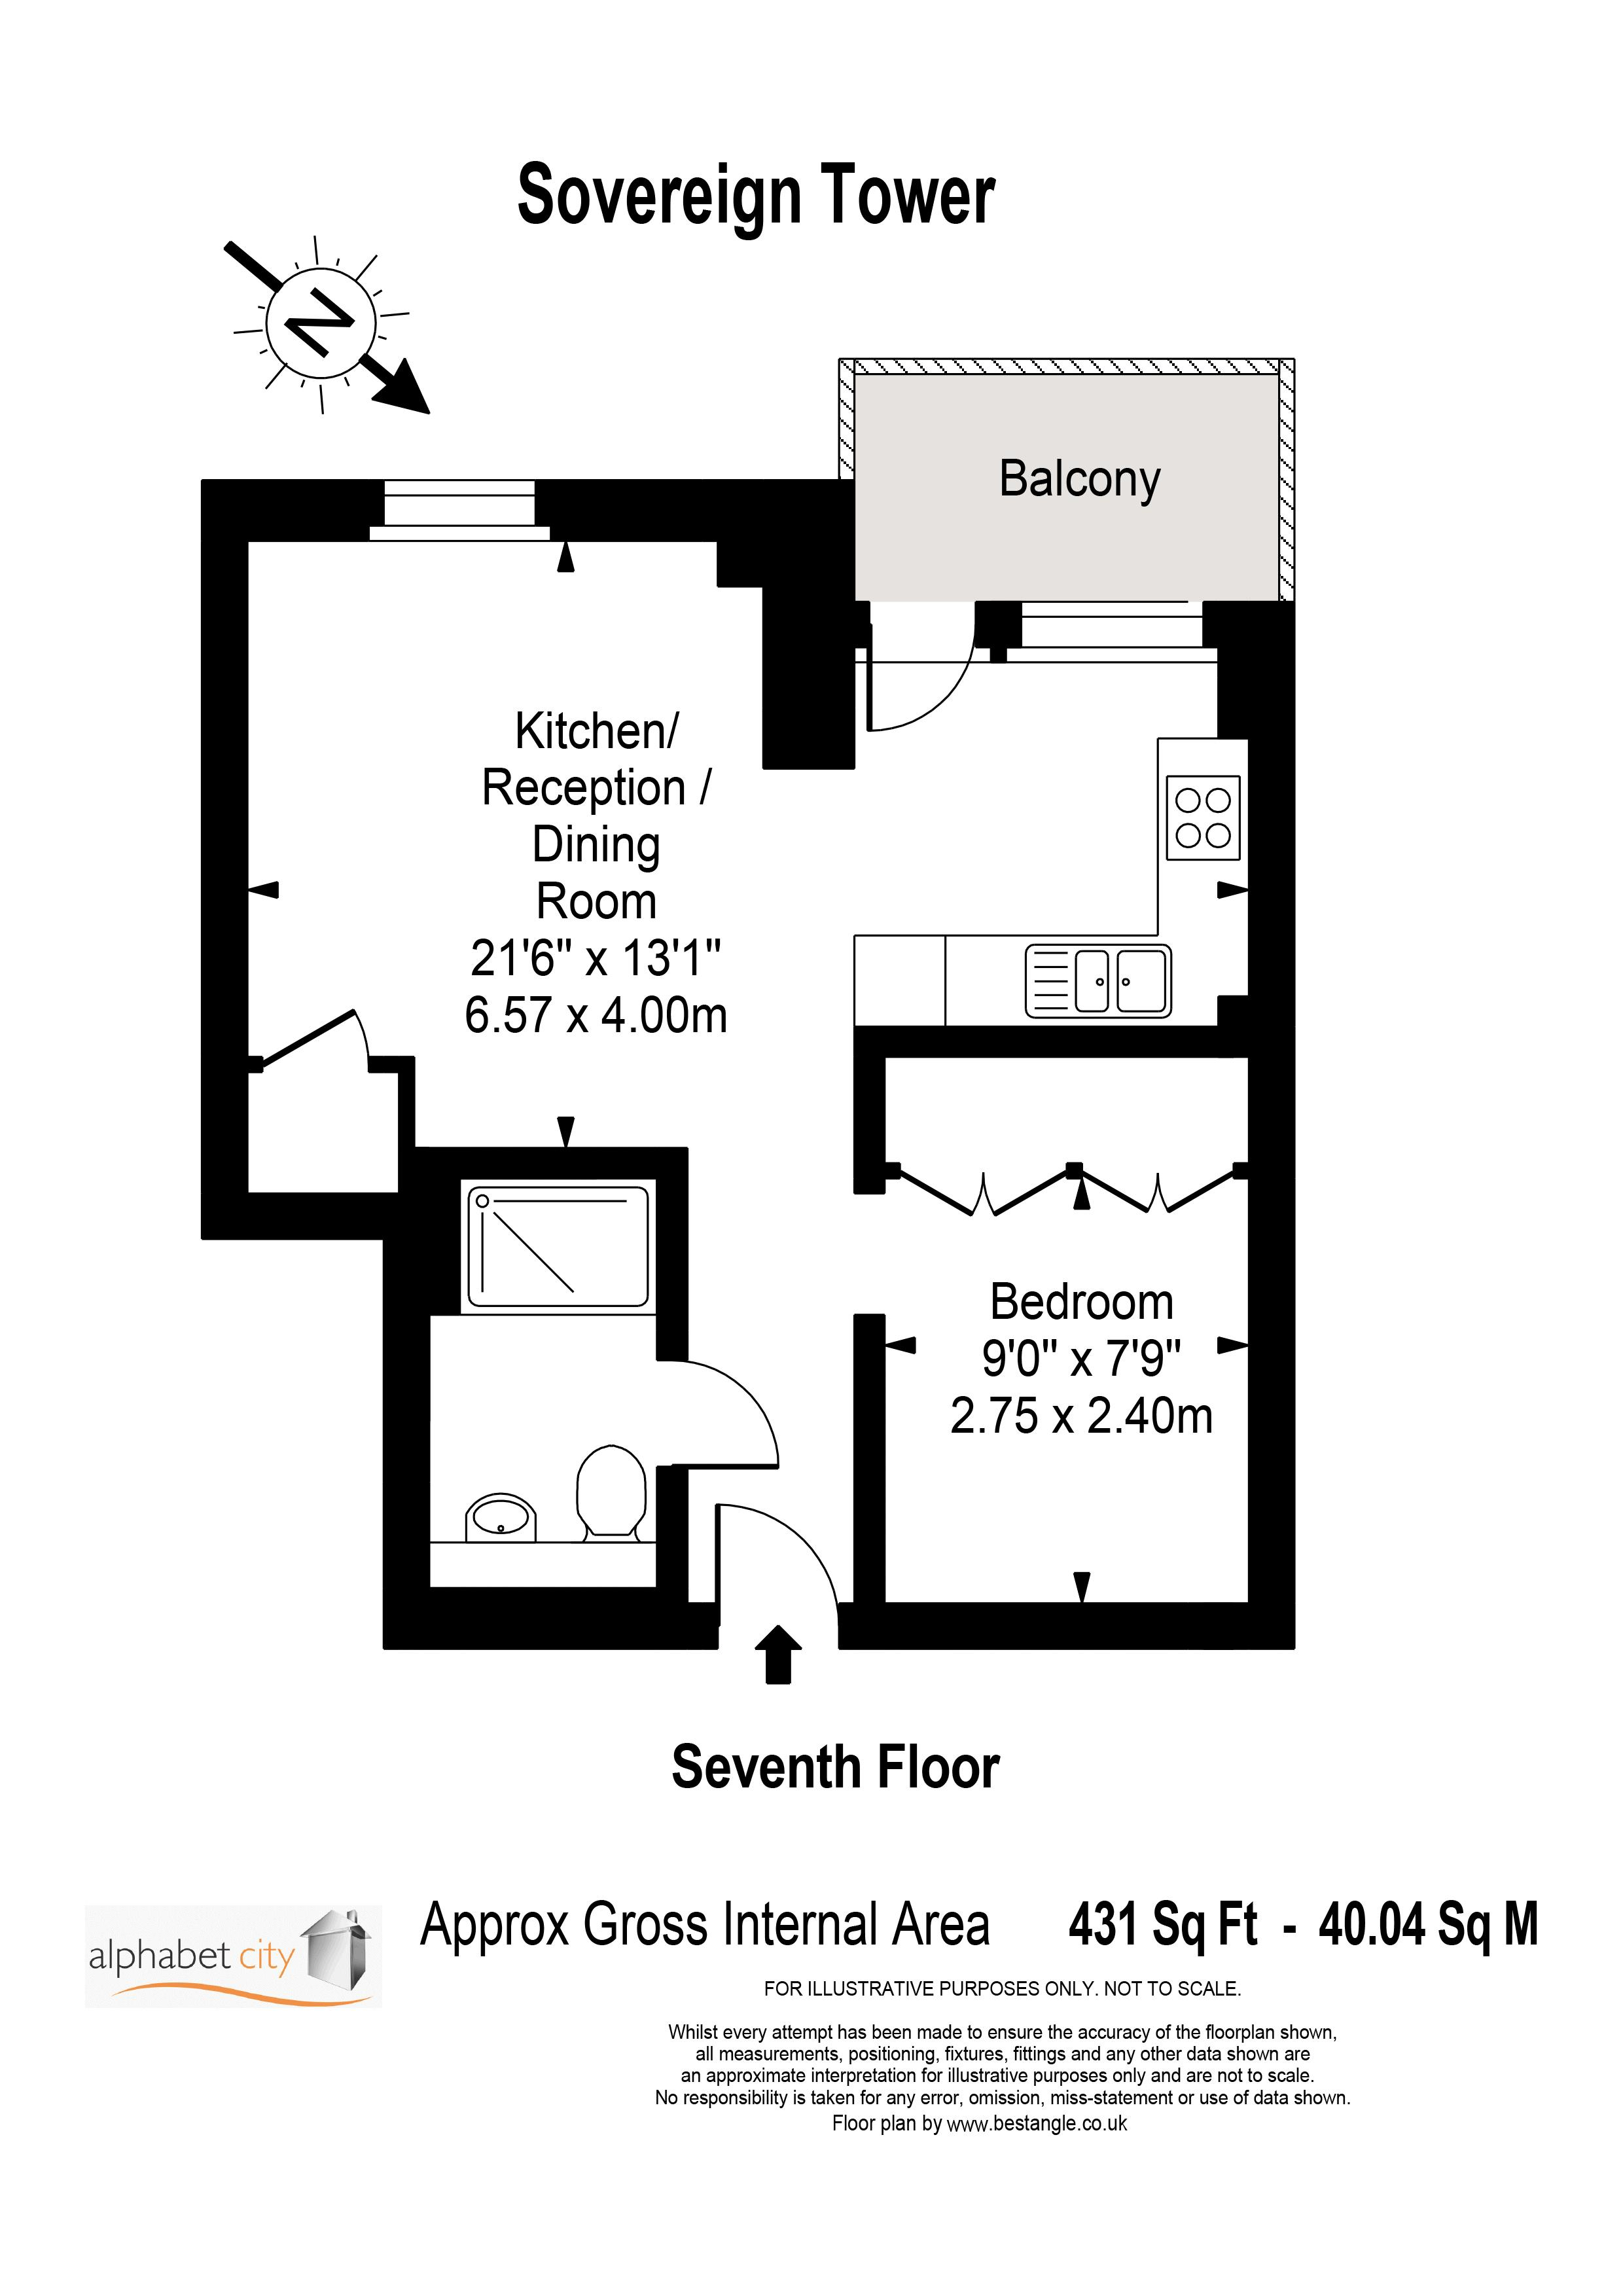 706 Sovereign Tower Floor plan